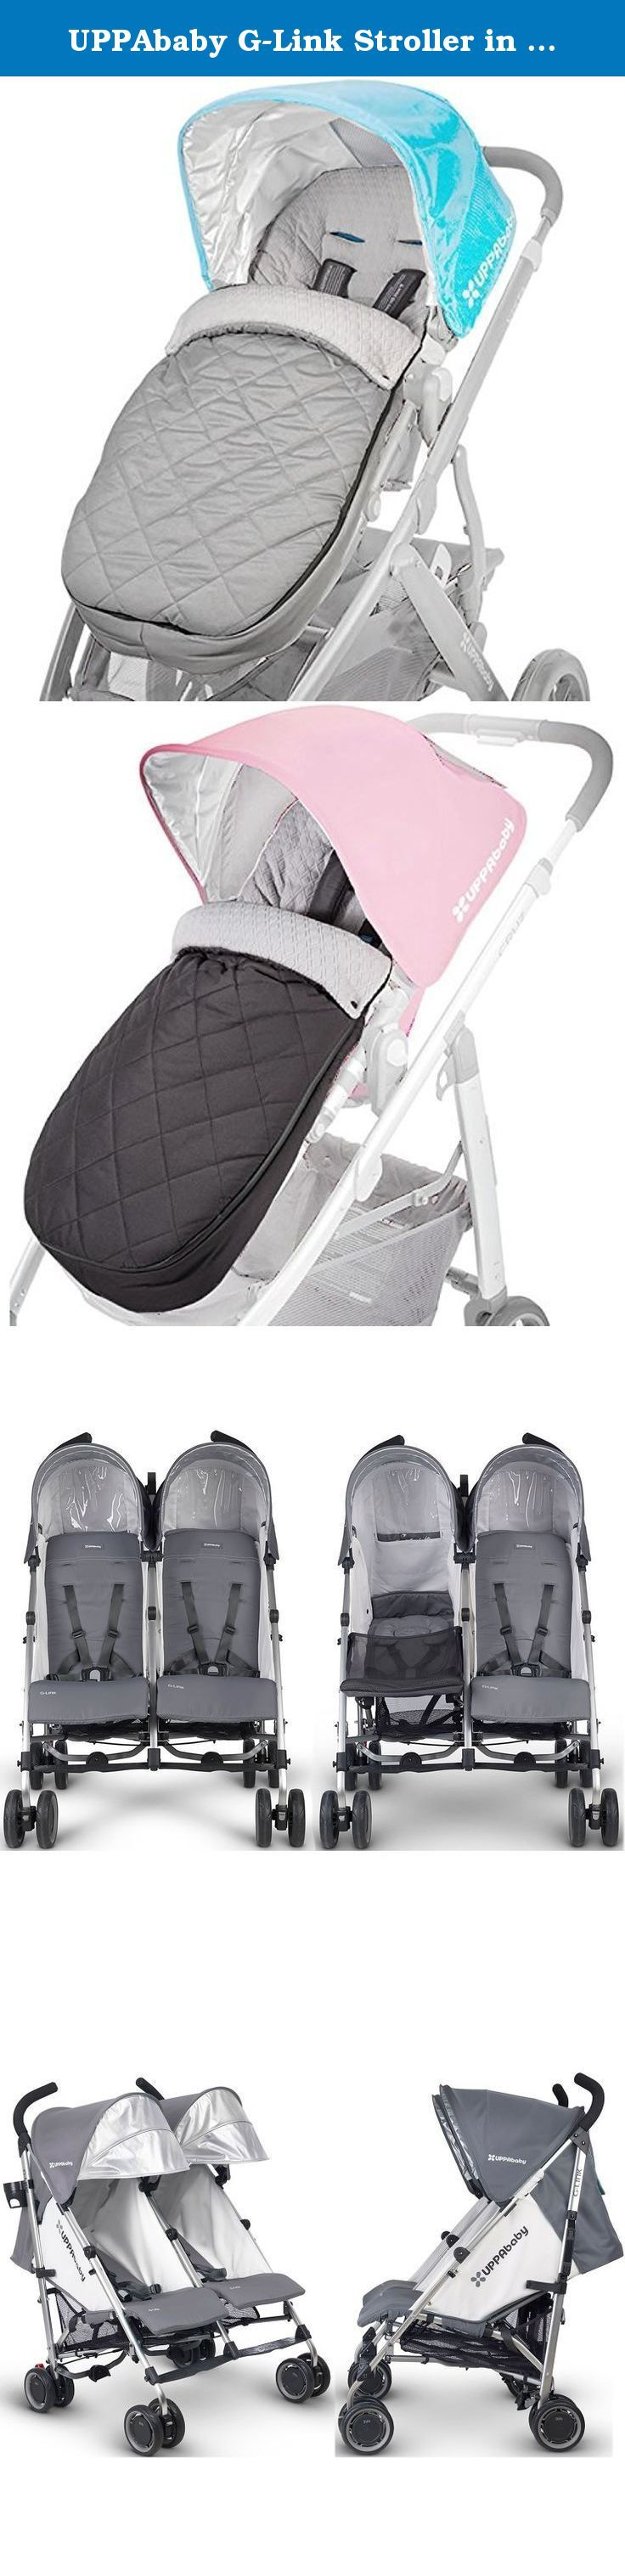 UPPAbaby GLink Stroller in Pascal With CozyGanoosh